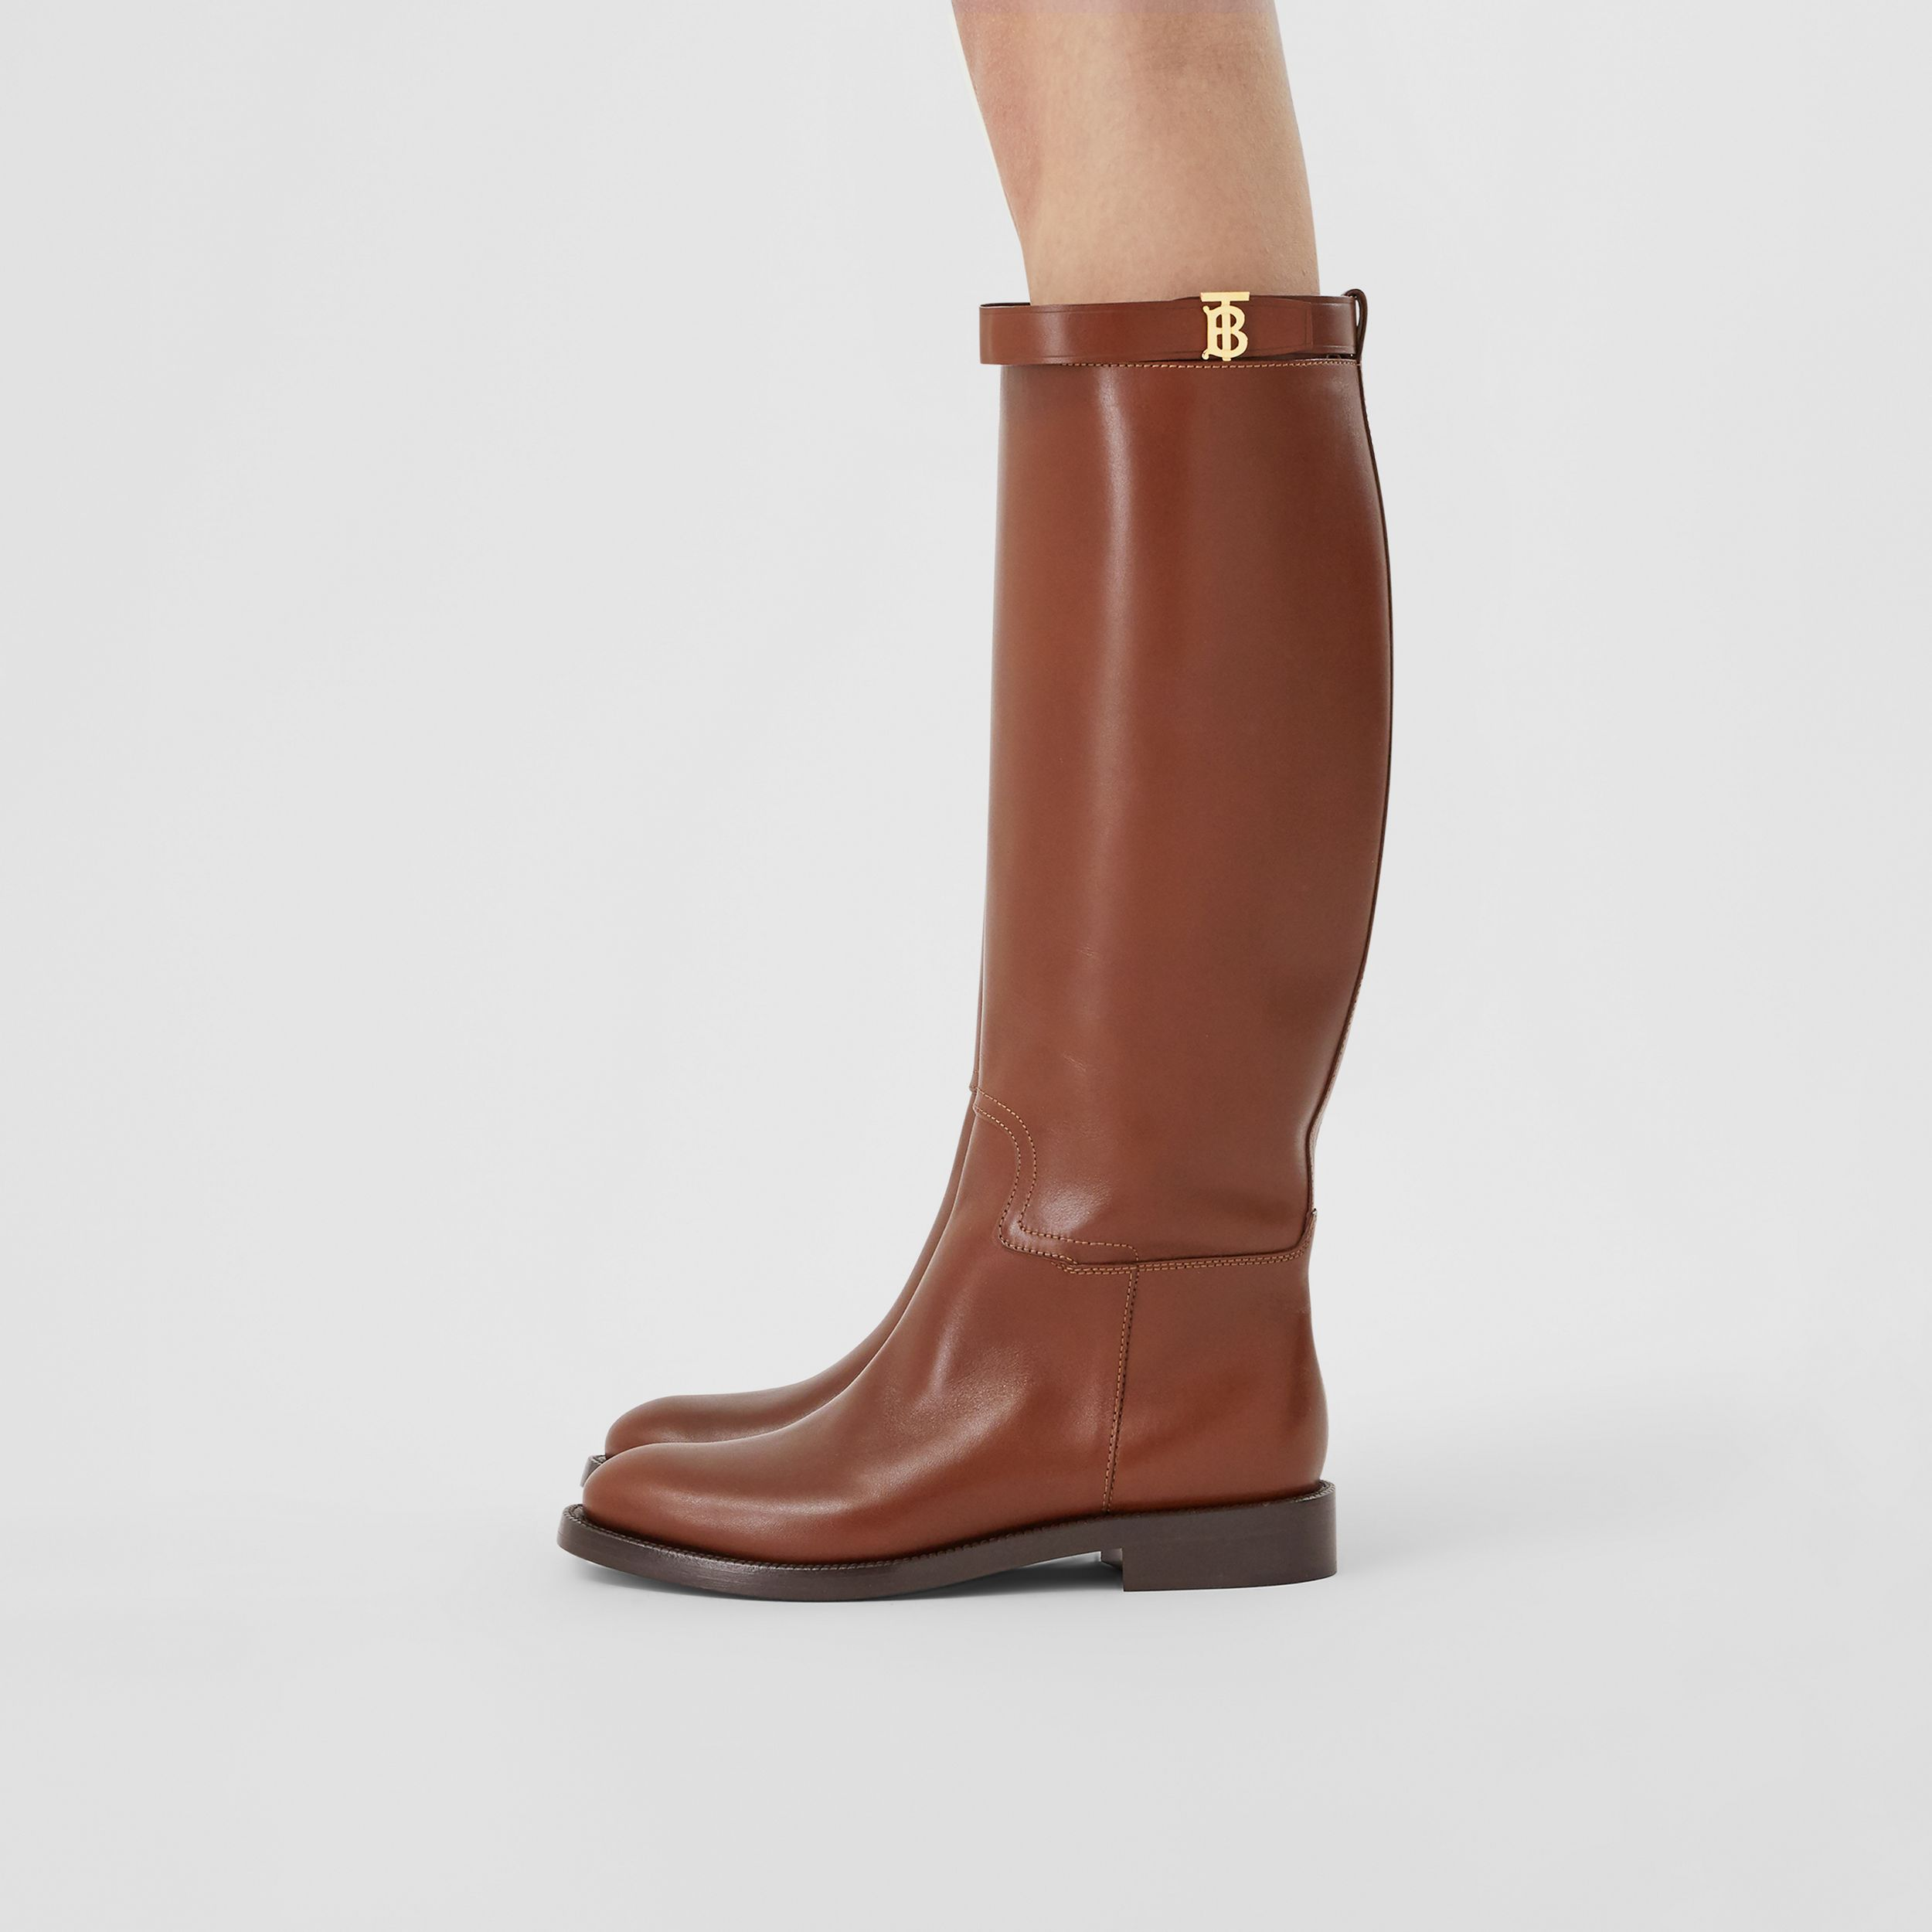 Monogram Motif Leather Knee-high Boots in Tan - Women | Burberry Singapore - 3